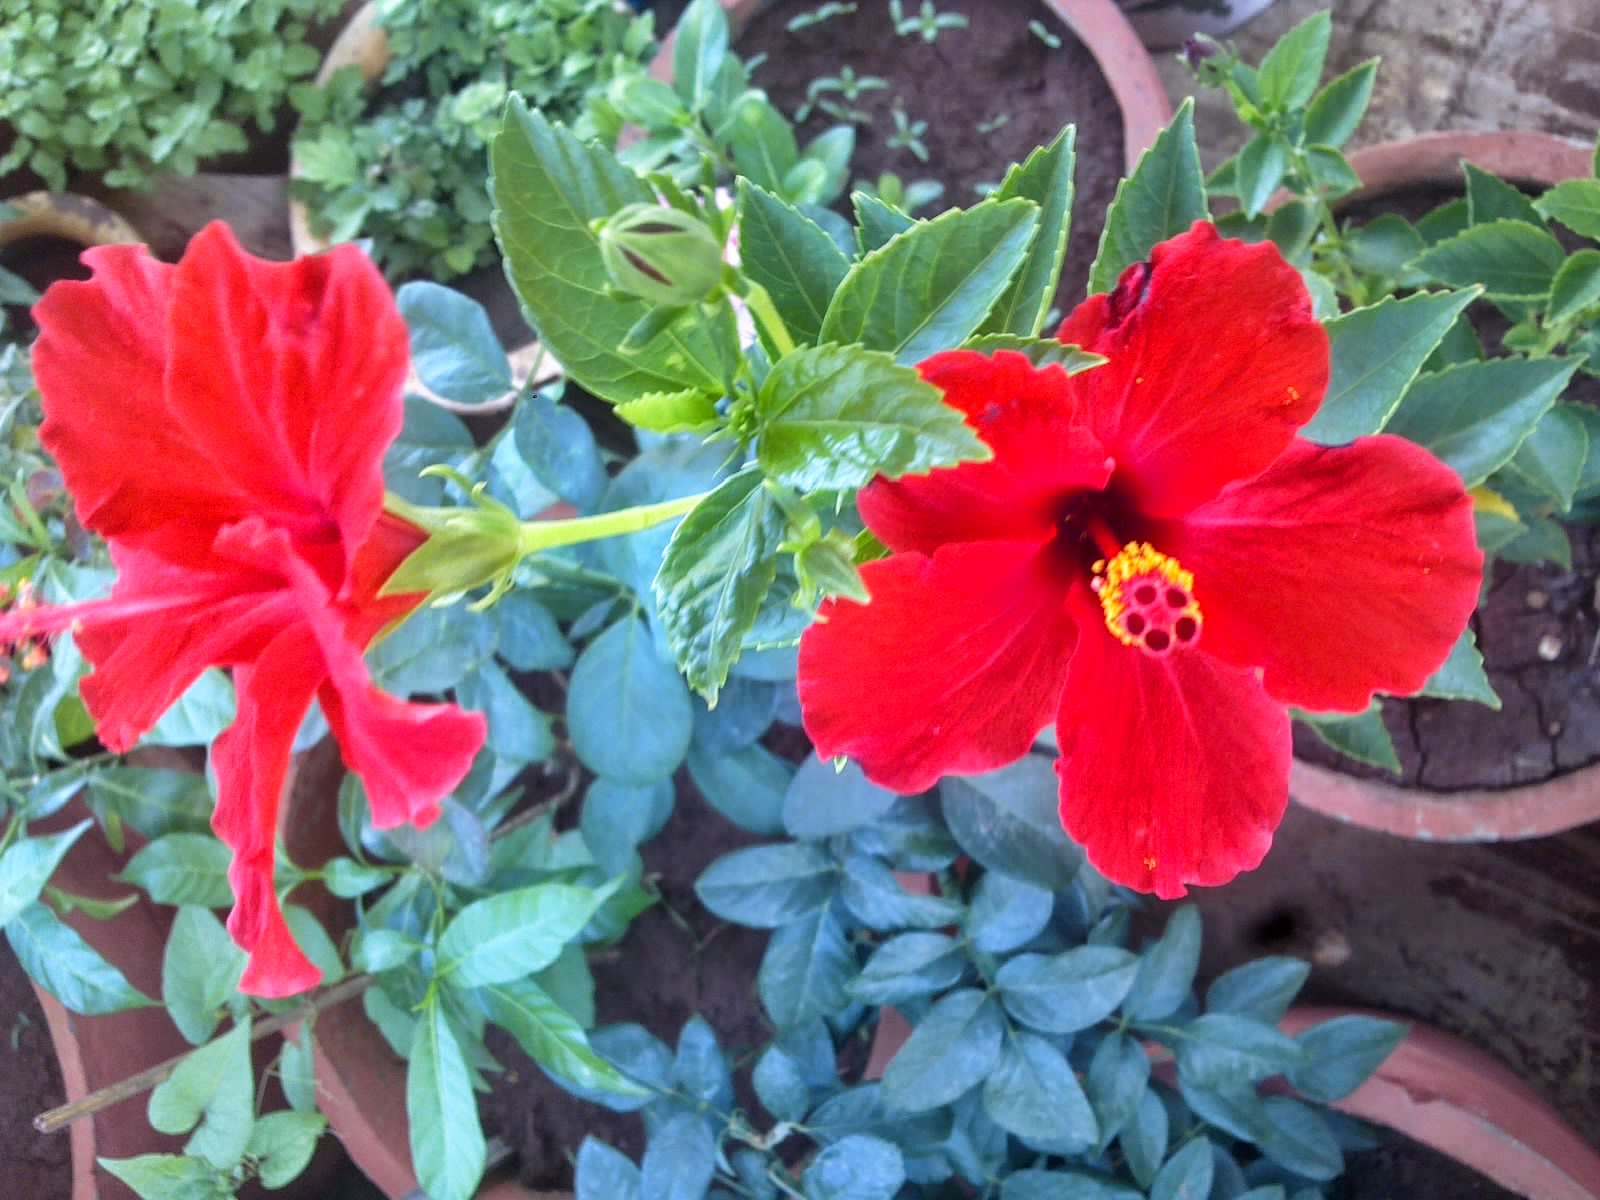 Plants growing in my potted garden how to grow and take care of fertilization for hibiscus plants hibiscus plants require some nitrogen in the soil in order to grow wellyou can place little bits of dry cow dung pats izmirmasajfo